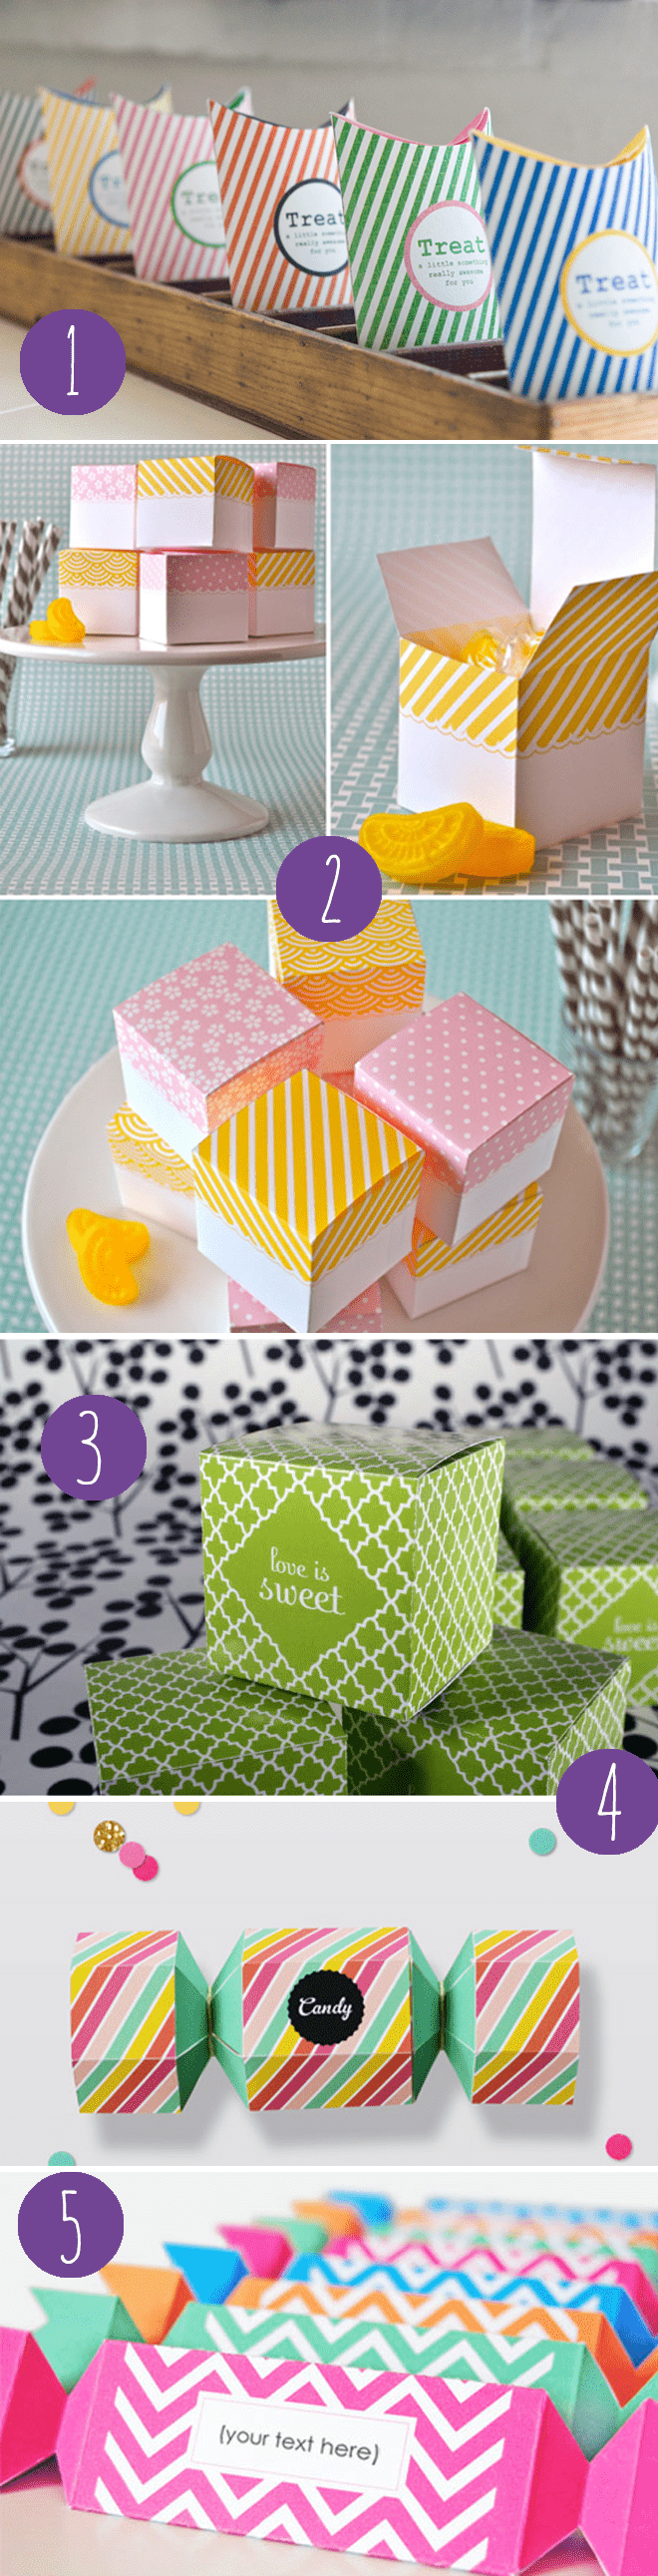 sweet collection of FREE printable favor boxes for parties, weddings, showers, + more!